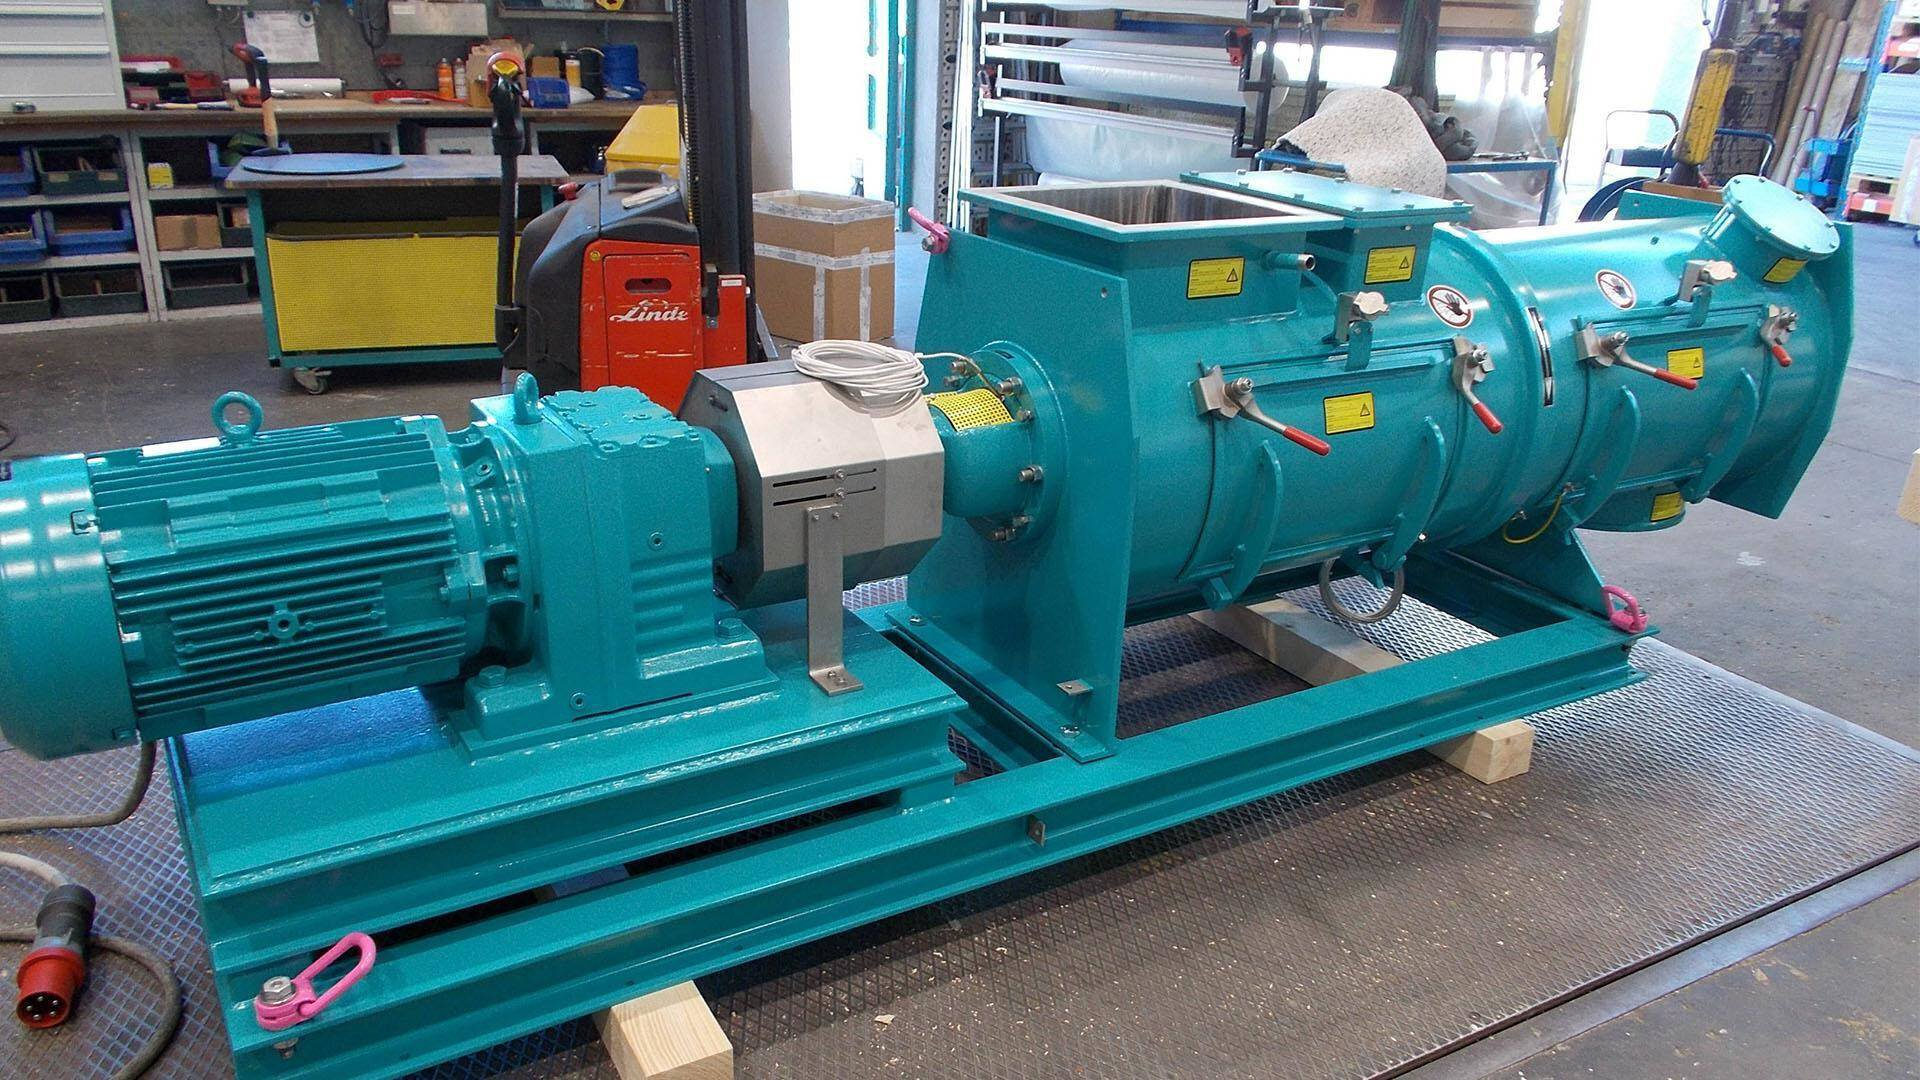 Gallery image 4 - Lödige Ploughshare® Mixer for continuous operation type KM 600 DW